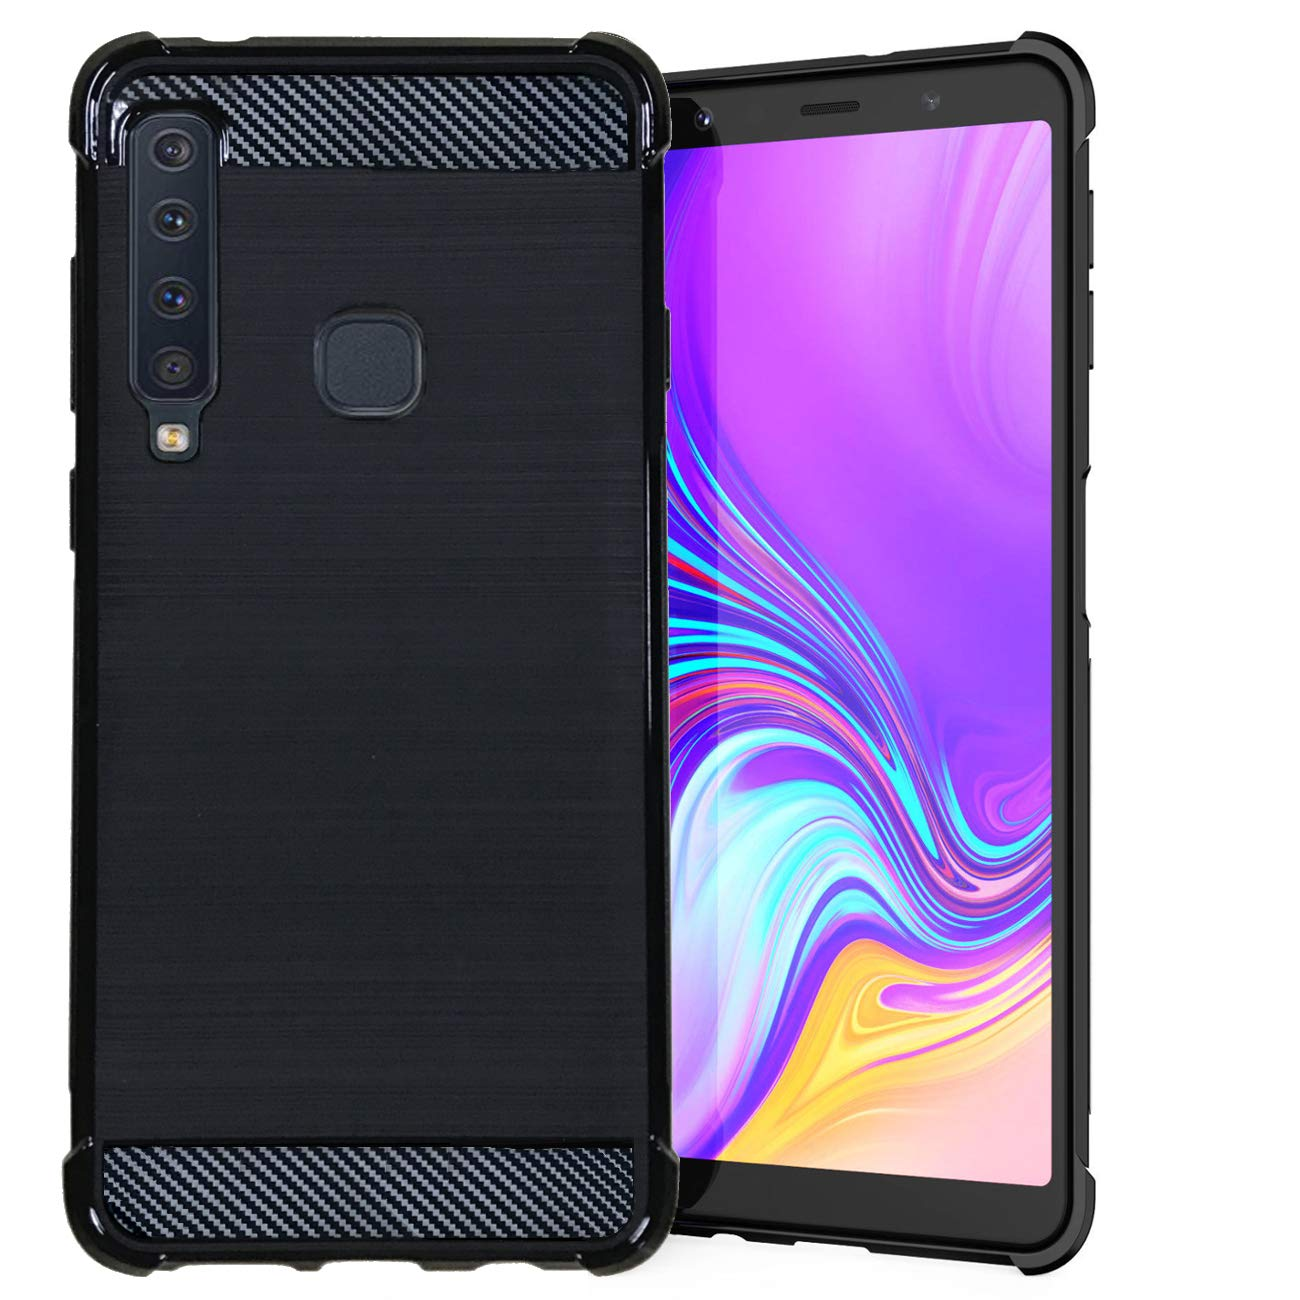 Toppix Case for Samsung Galaxy A9 (2018), Soft TPU Reinforced Bumper[Shock Absorption][Carbon Fiber Texture] Protective Flexible Cover for Samsung Galaxy A9 (2018) (Black)